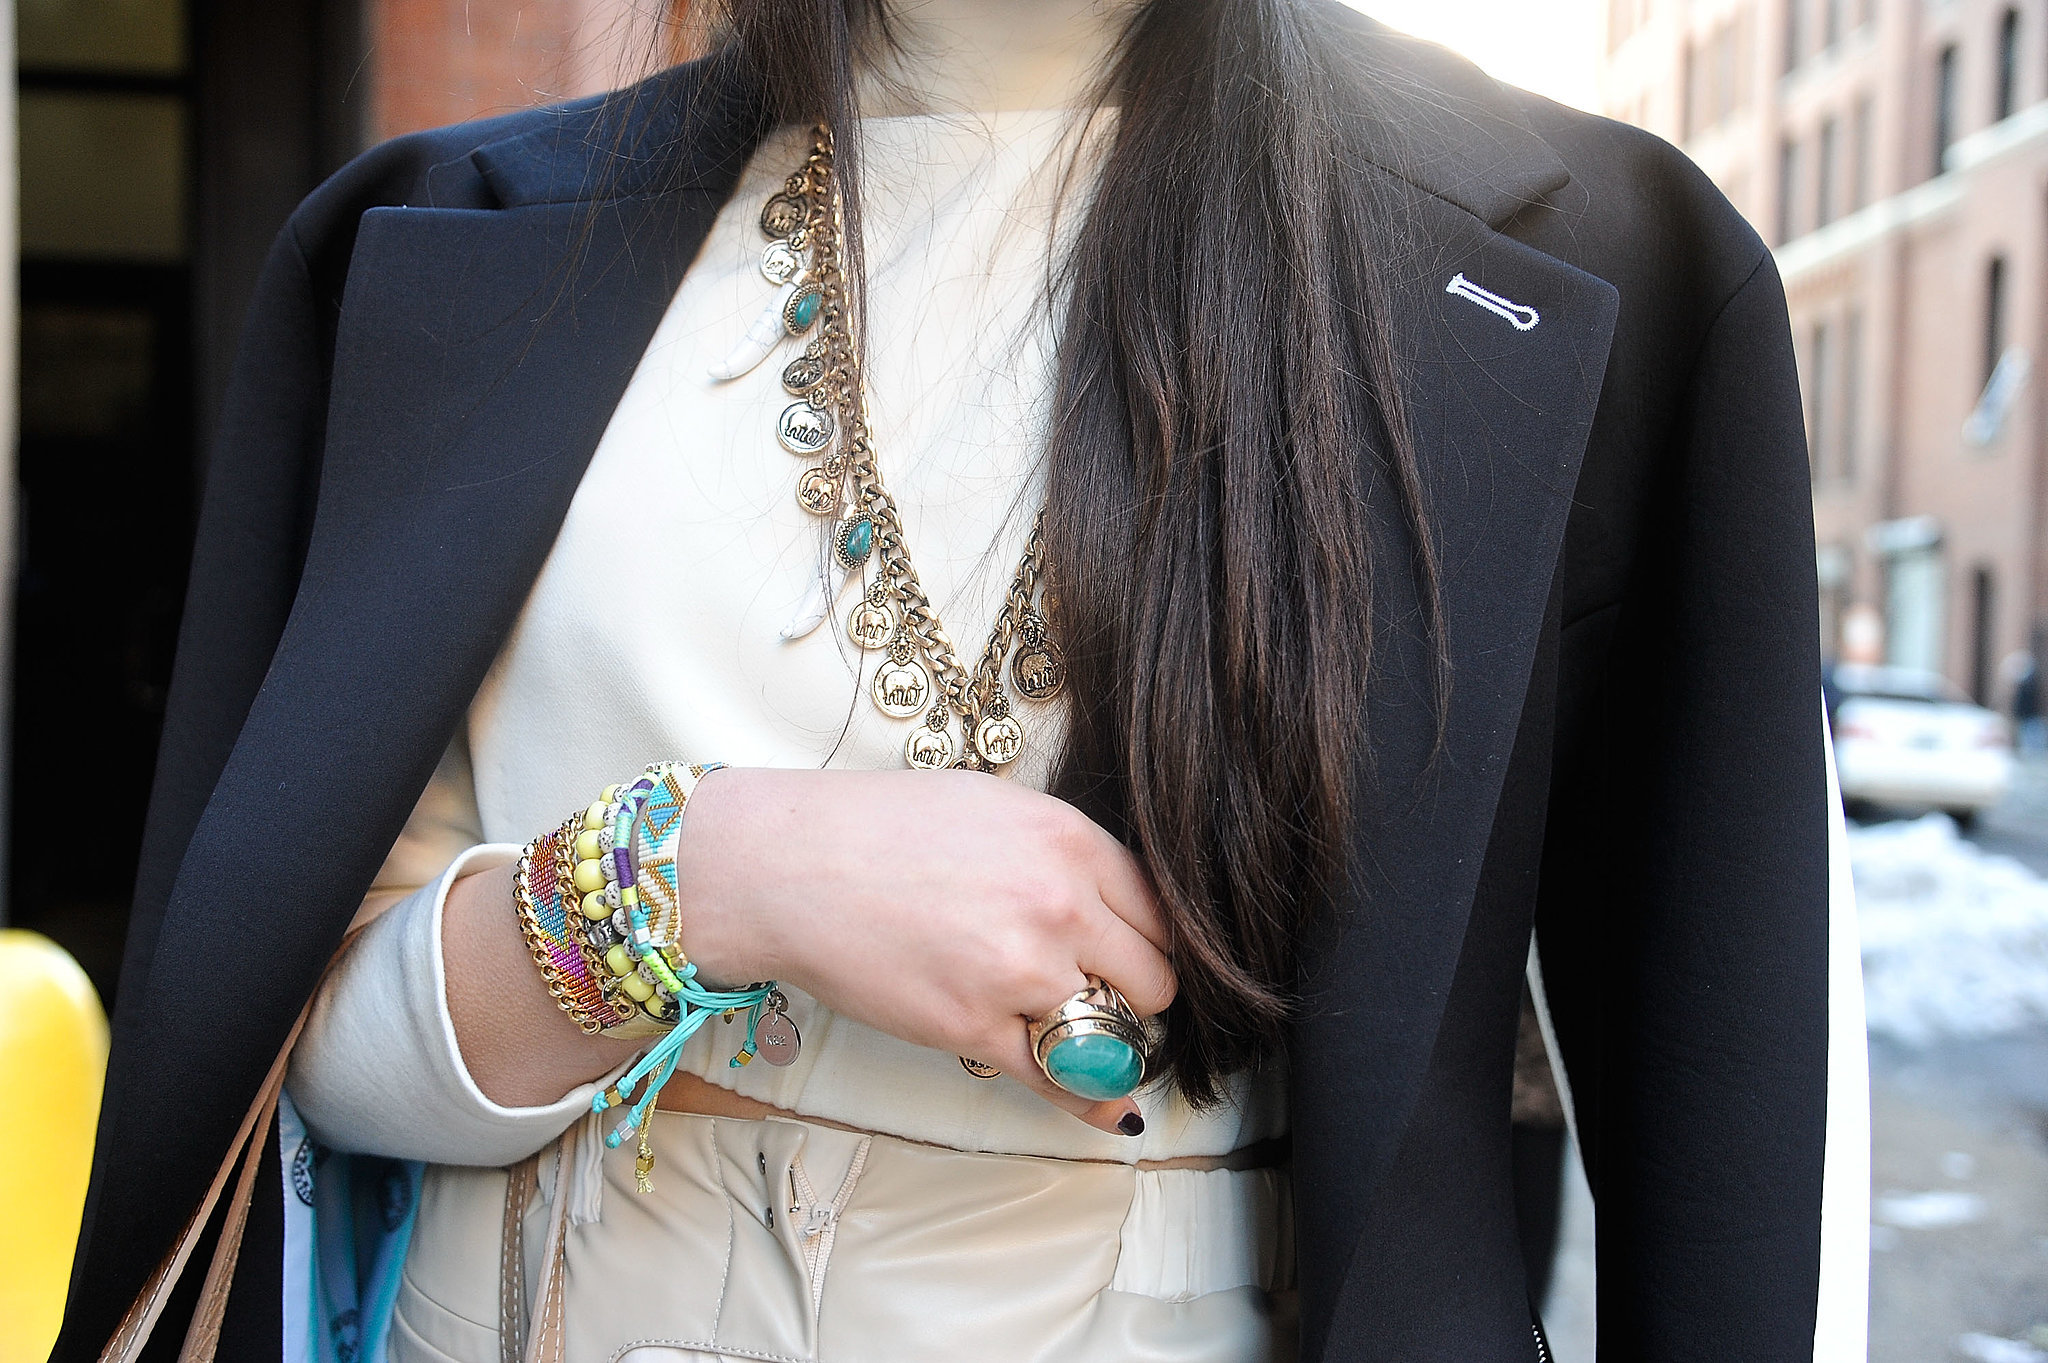 This girl's jewels deserve a zoomed-in look.